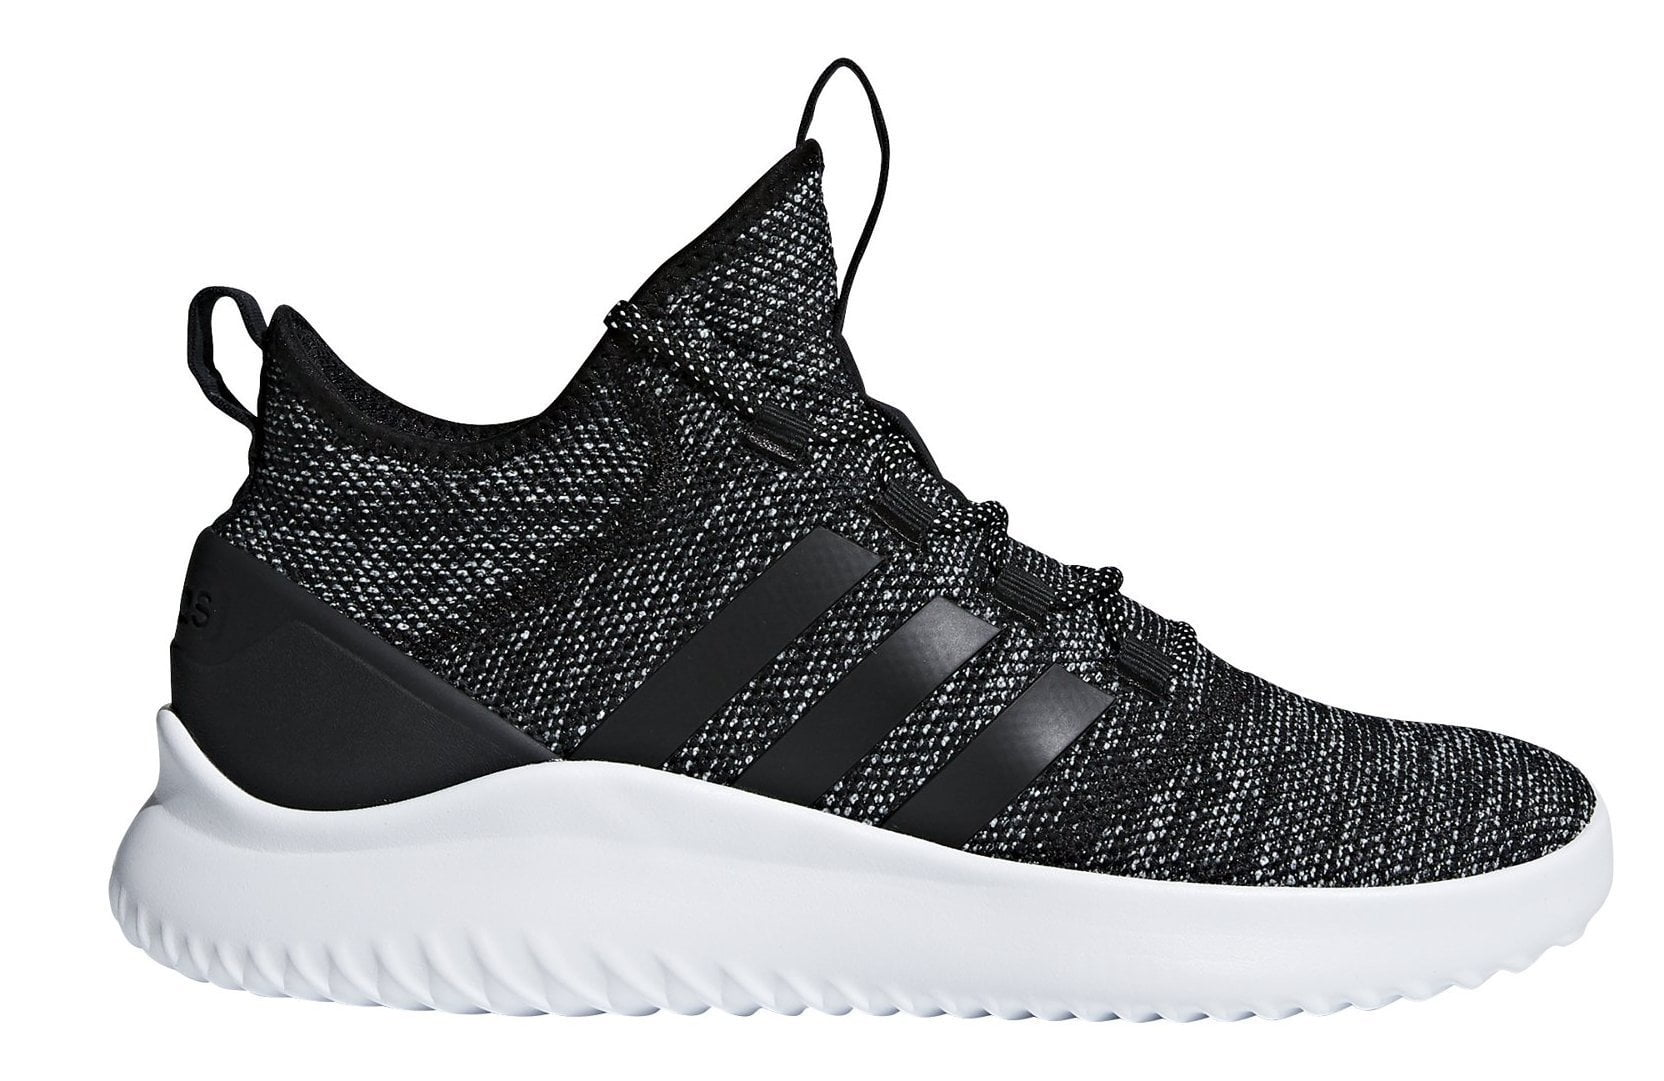 bc01d9a813a2 ADIDAS MEN S SPORT INSPIRED CLOUDFOAM ULTIMATE BLACK B-BALL SHOES - INSPORT